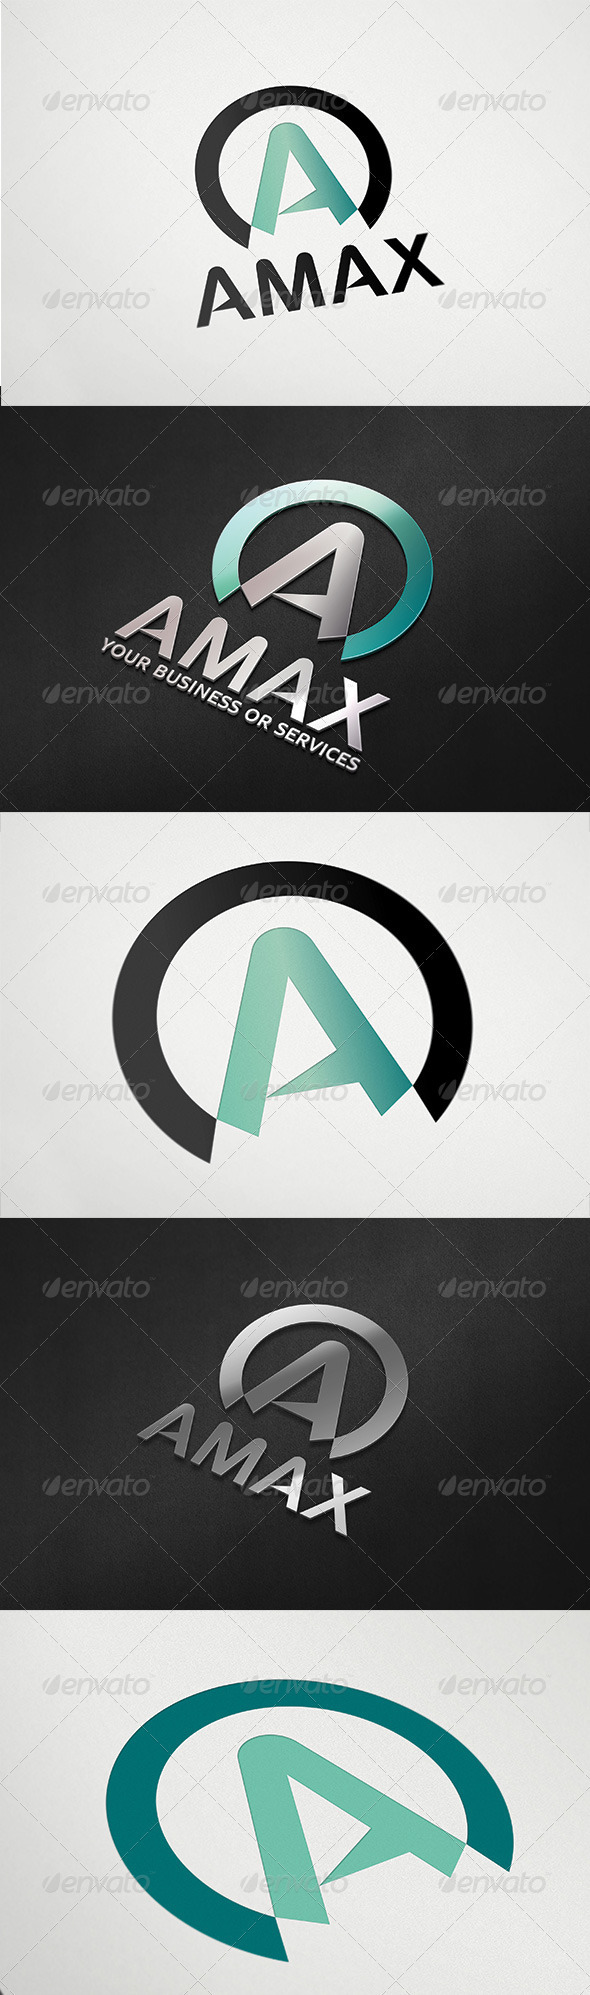 Letter A Aka AMAX Logo Pinterest Logo design template Logos and